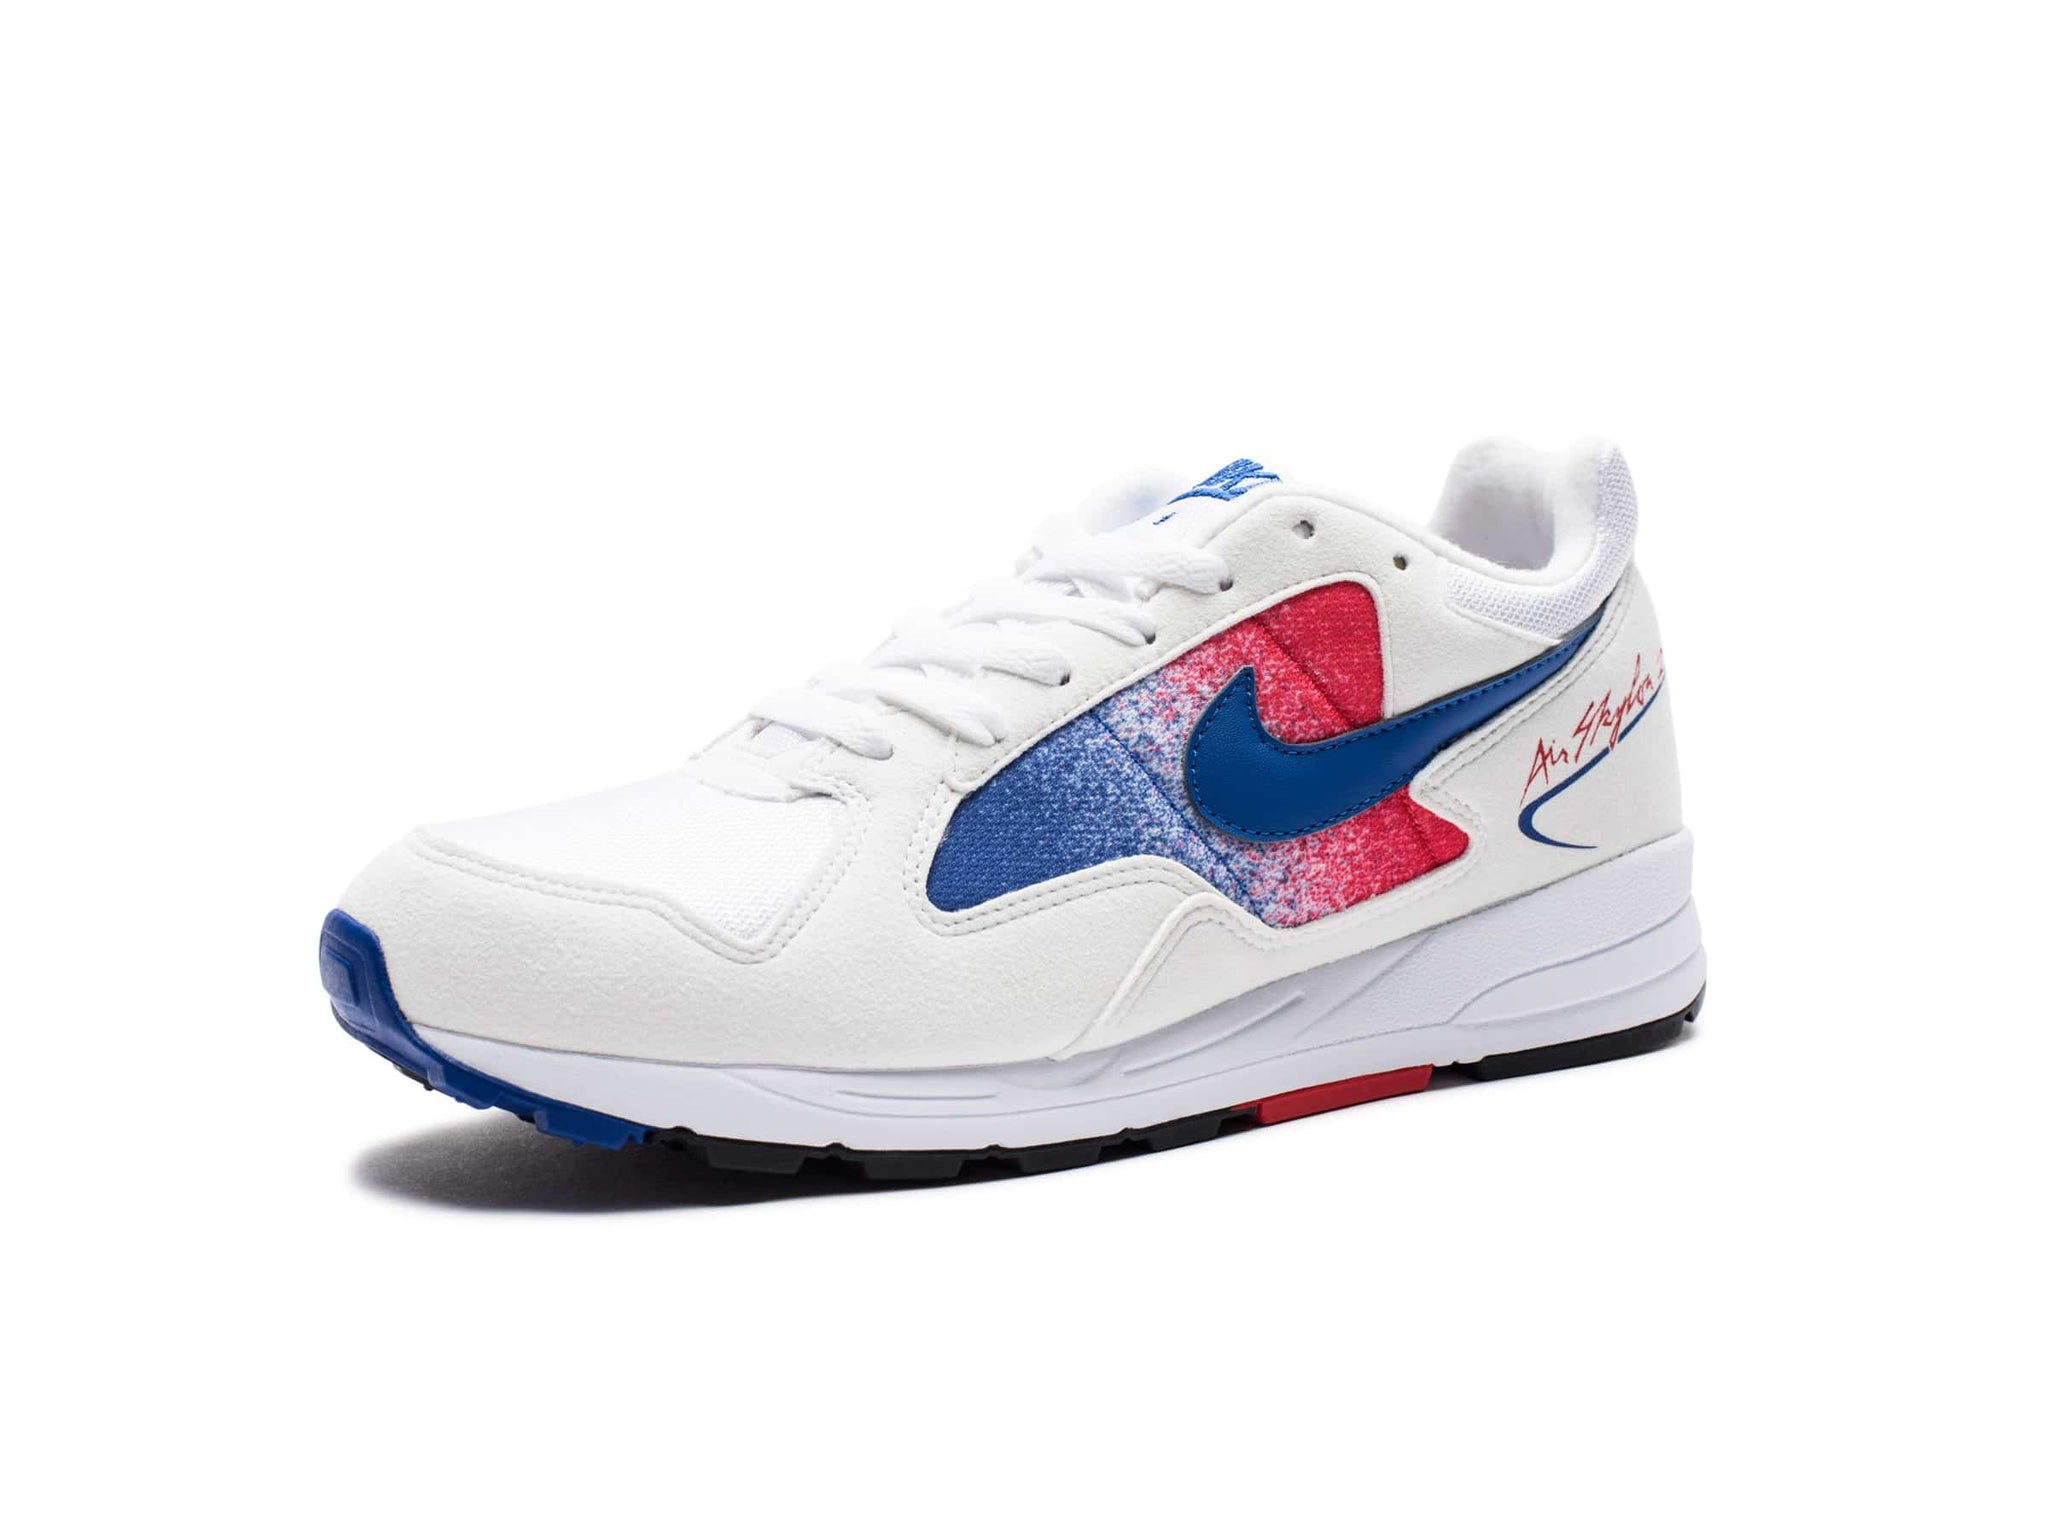 AIR SKYLON II - WHITE/GAMEROYAL/UNIVERSITYRED/BLACK